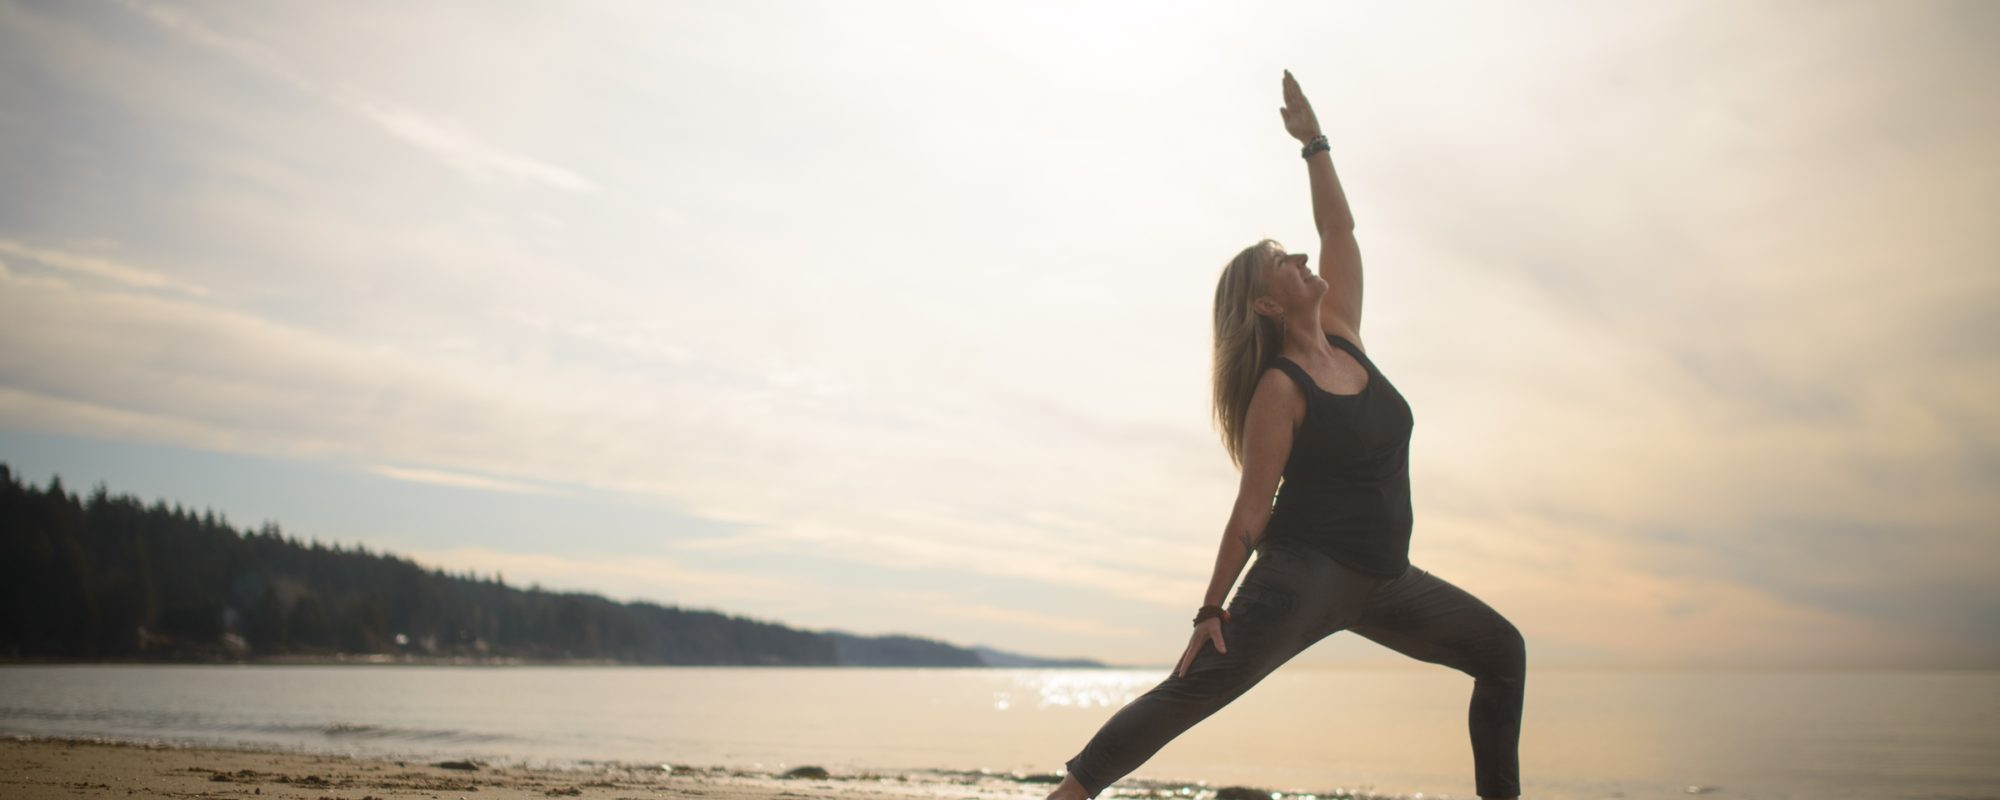 Yoga on the beach in Roberts Creek